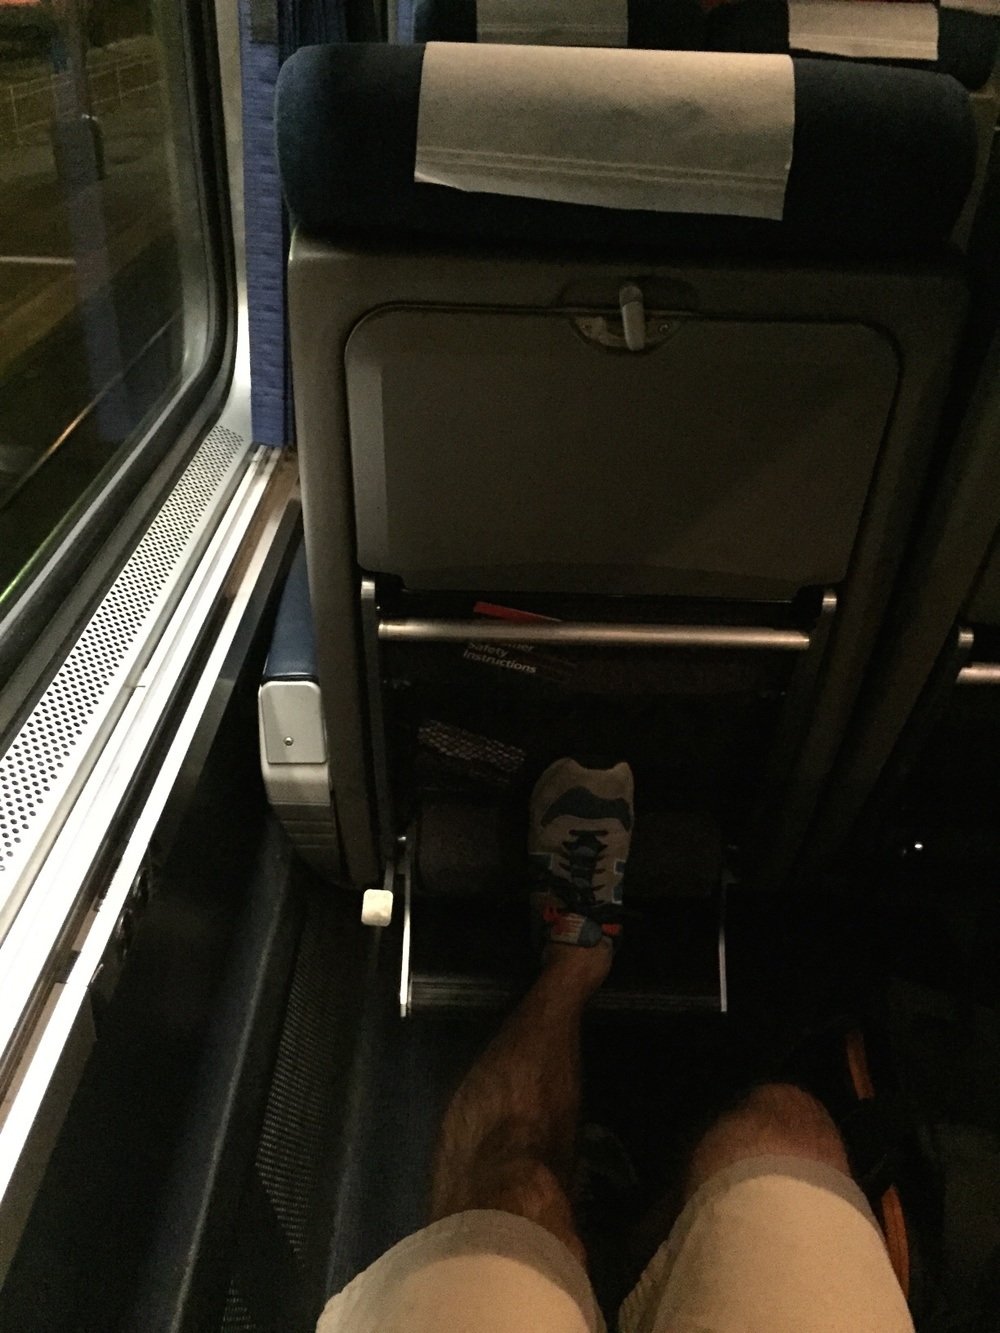 Legroom is no challenge on an Amtrak train.